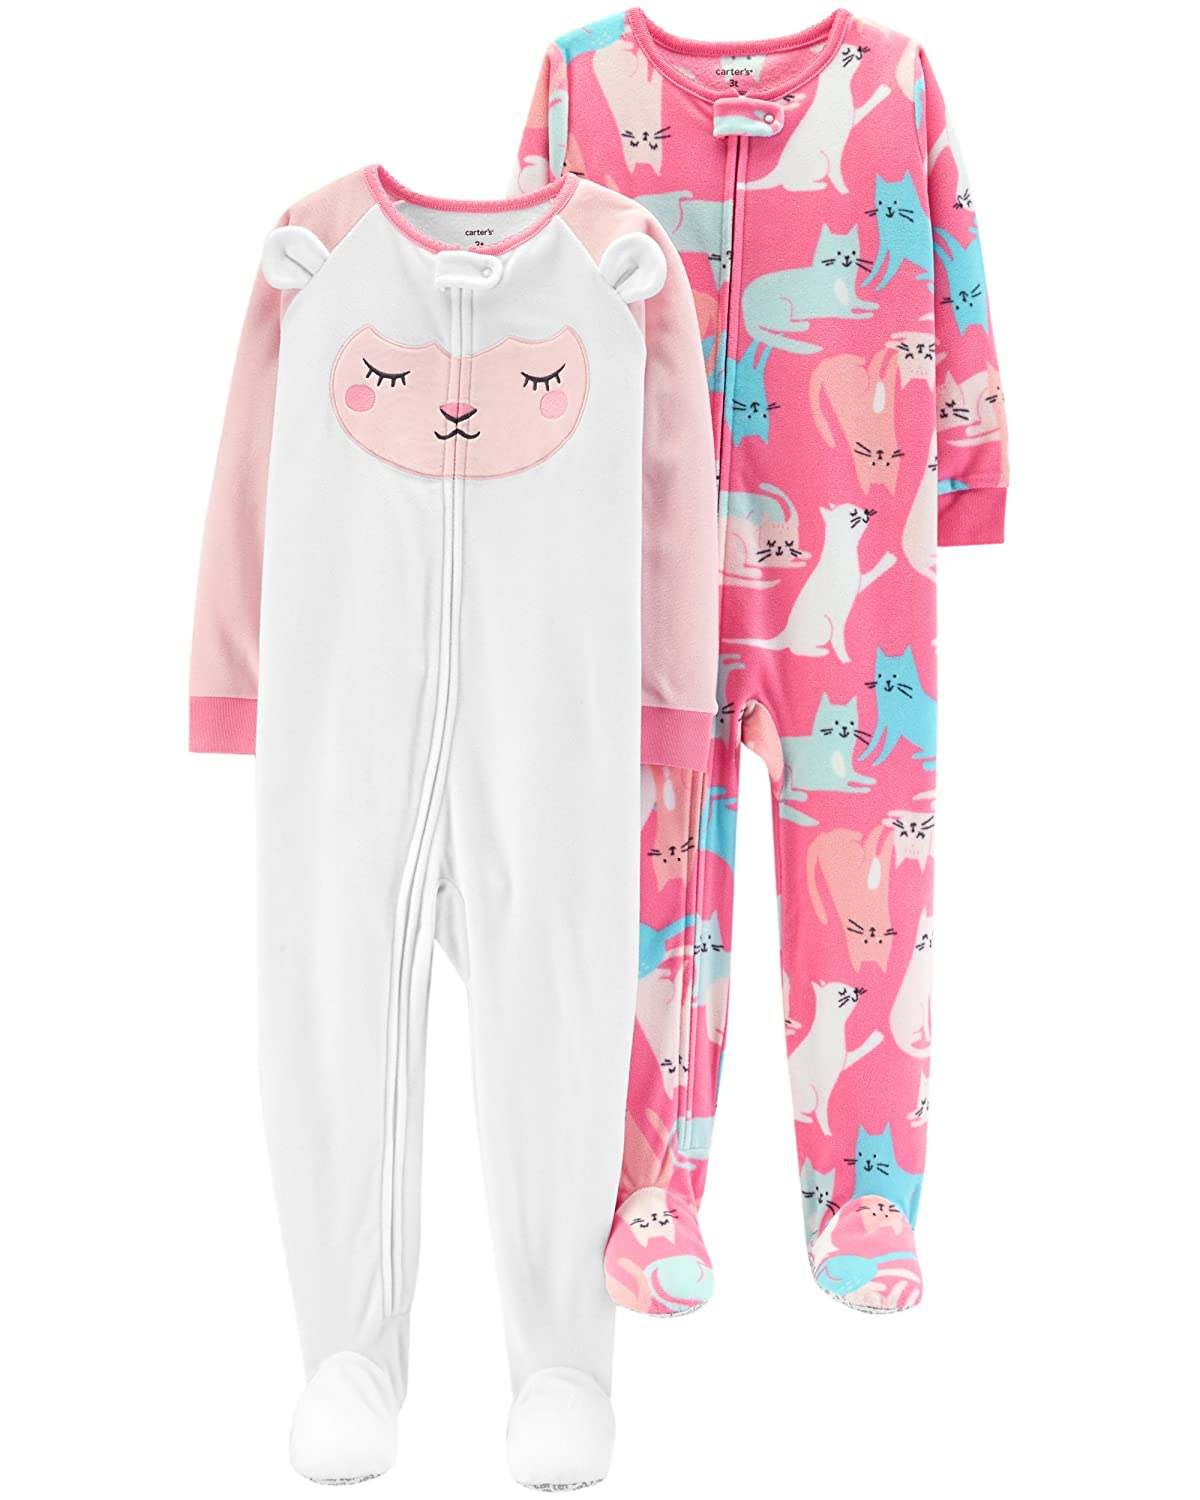 Carter's Baby Girls' 2-Pack Fleece Pajama Set Carters KBC 357G285